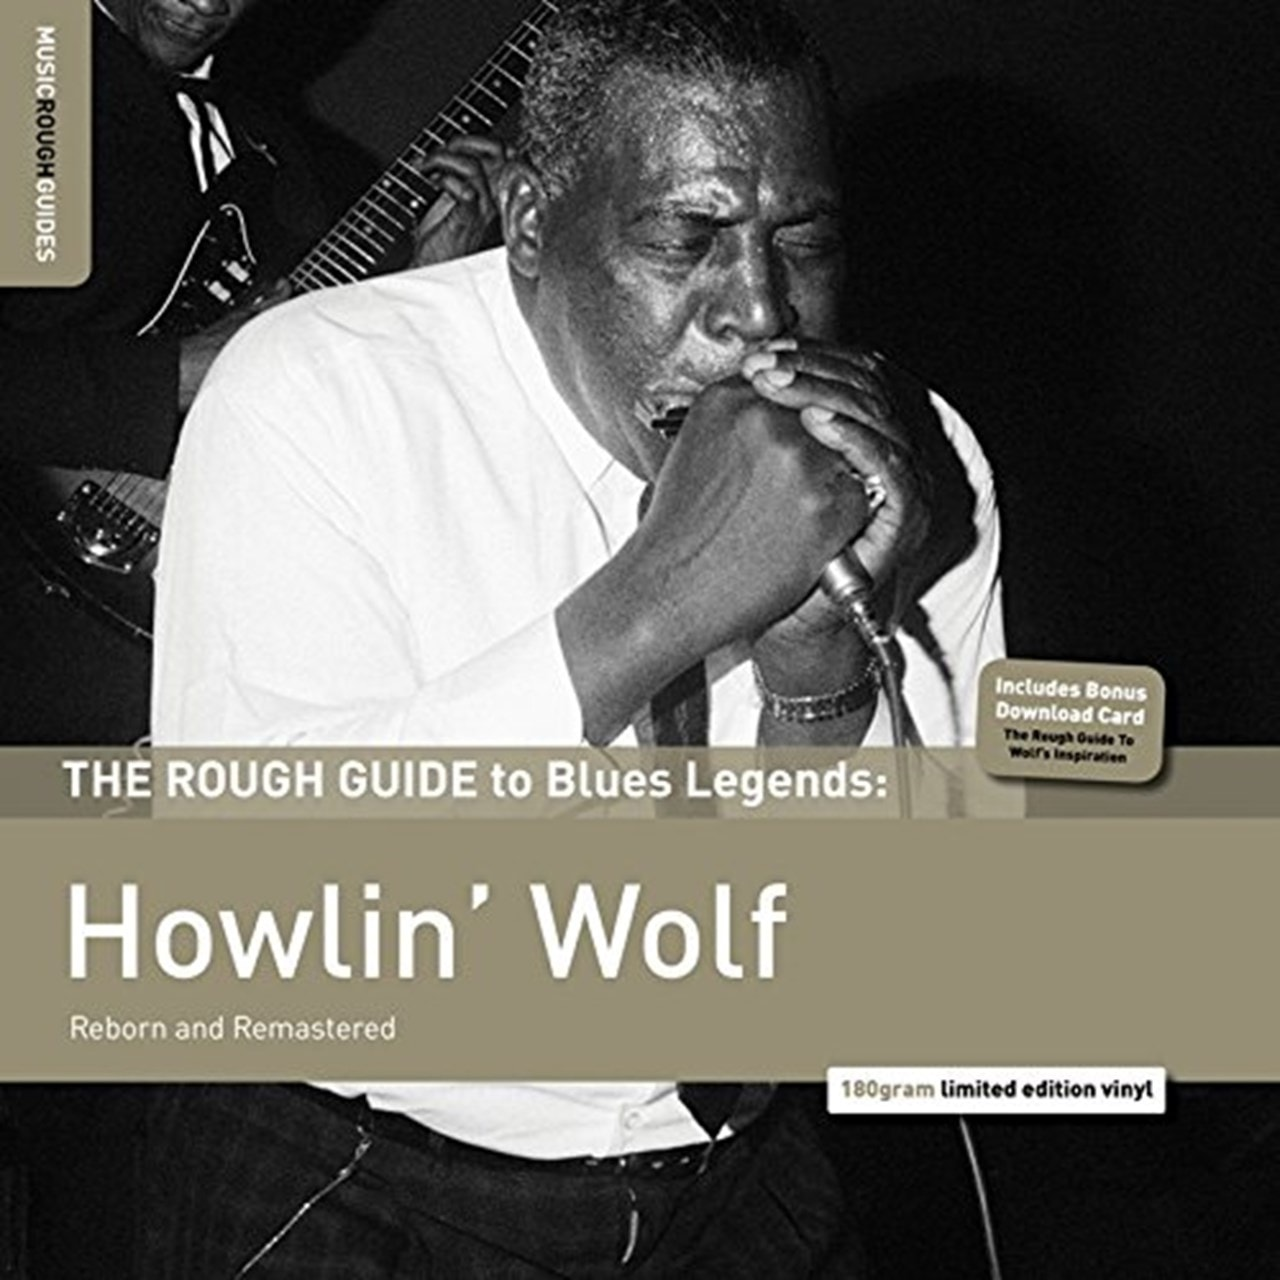 The Rough Guide to Blues Legends: Howlin' Wolf - 1